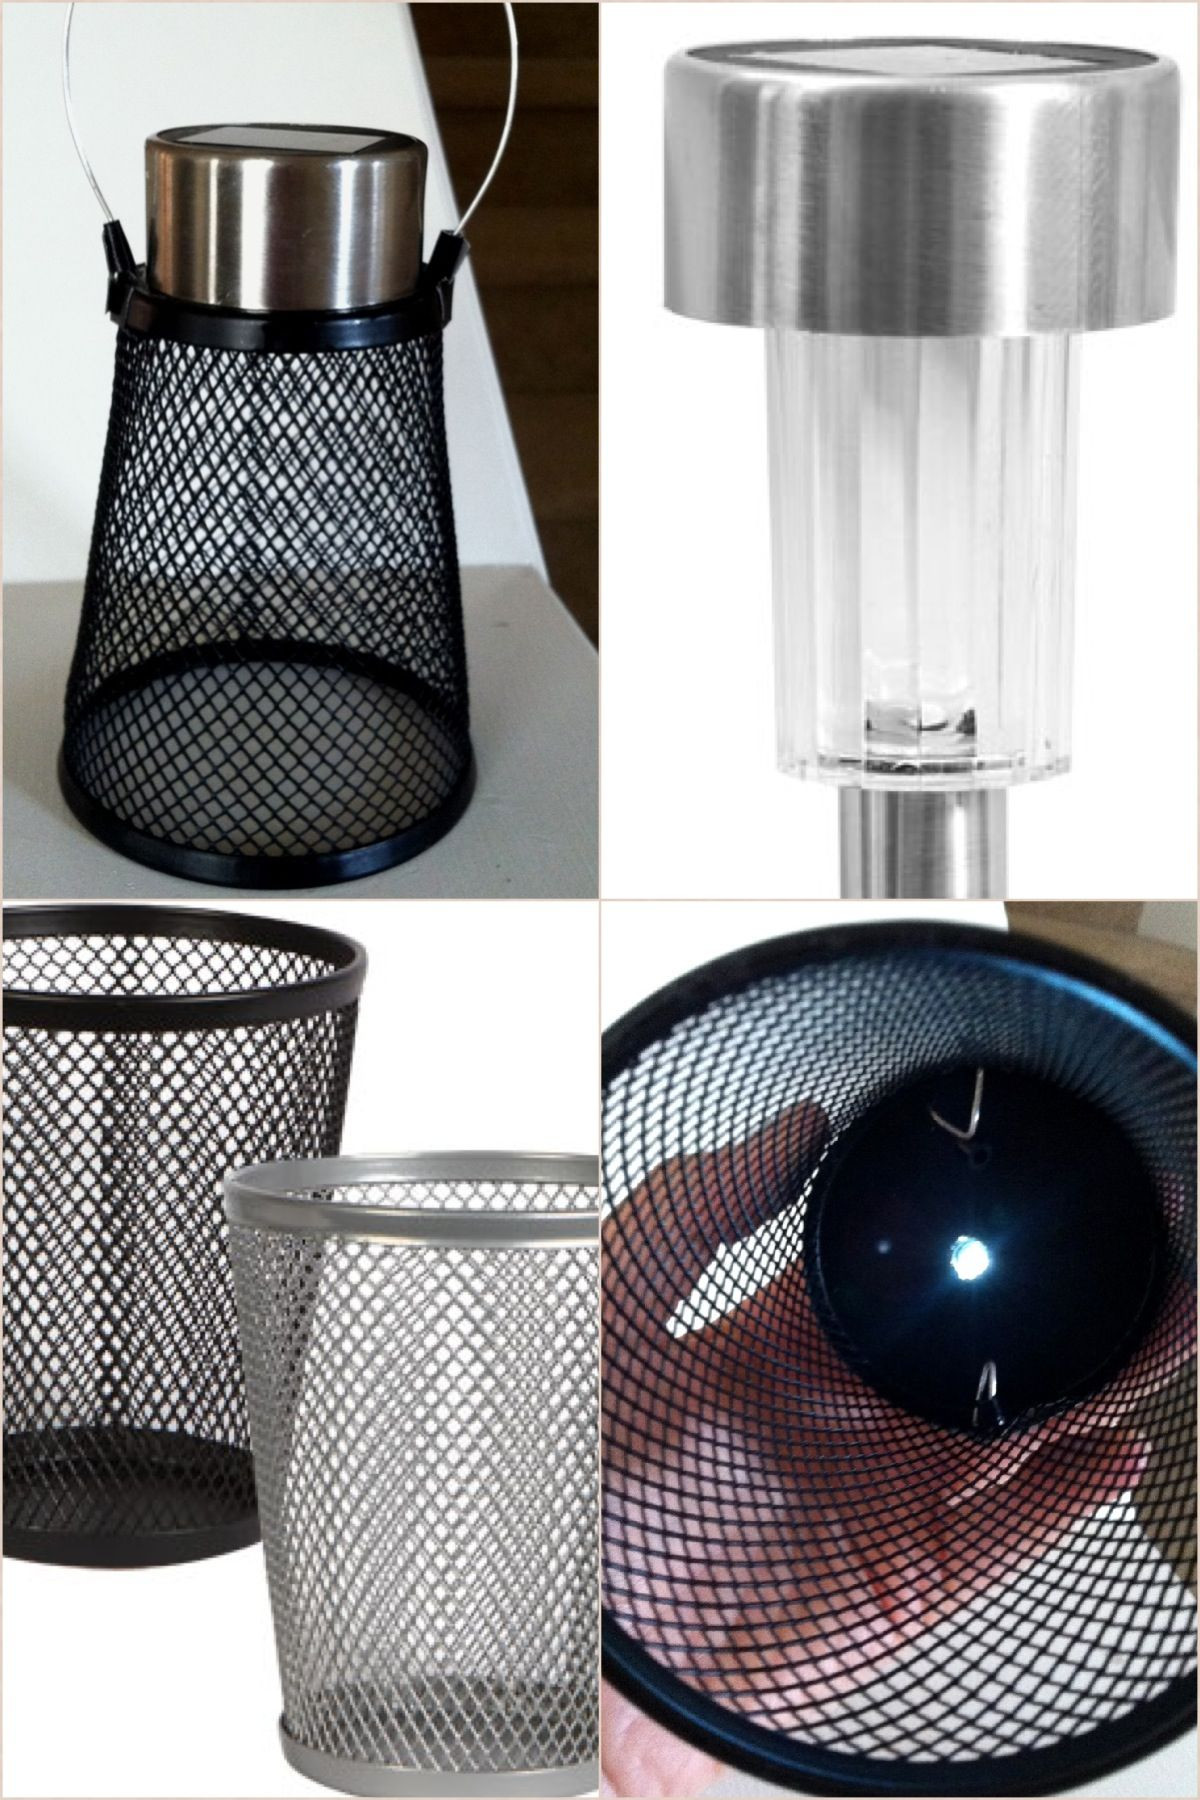 glass vase with hole for lights of 2 patio lights top of solar stake a pencil cup with hole pertaining to 2 patio lights top of solar stake a pencil cup with hole drilled in